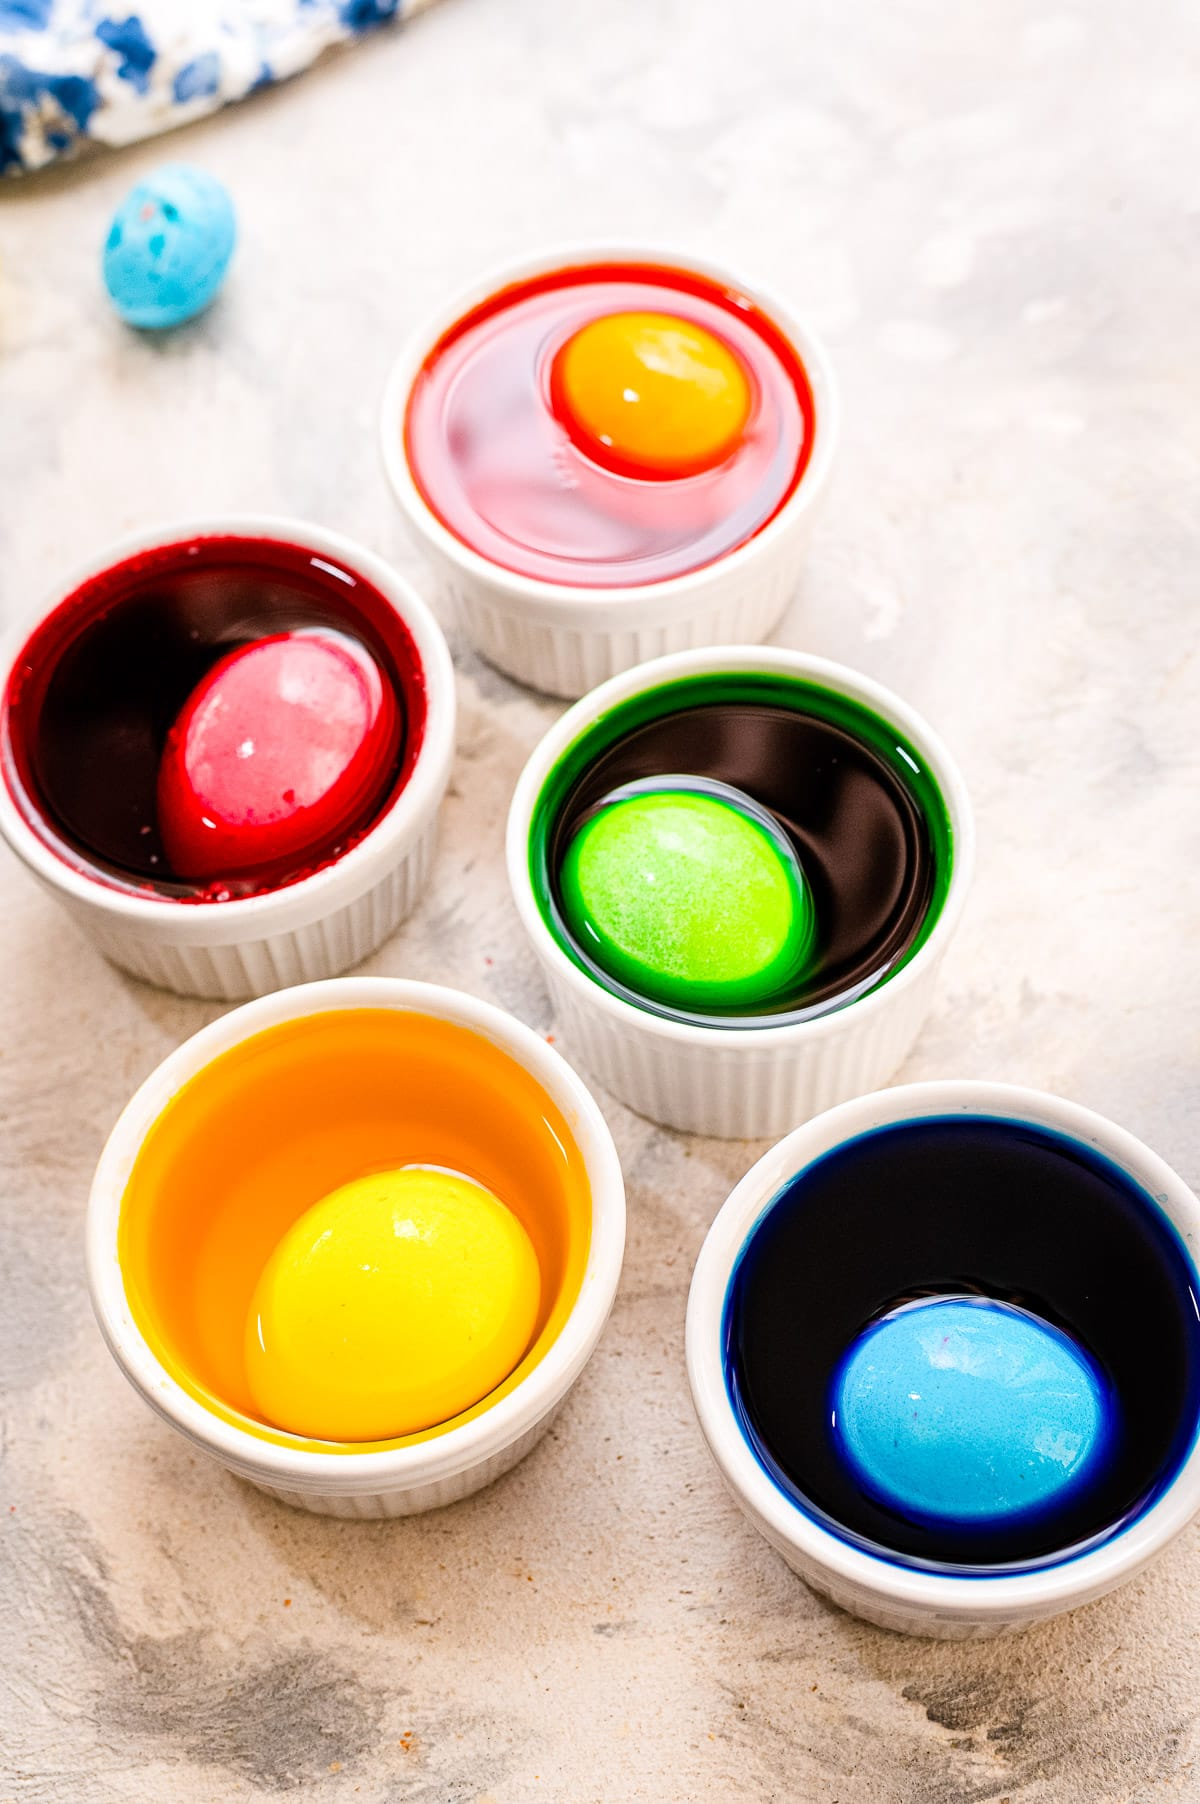 Cups with dye and hard boiled eggs in them